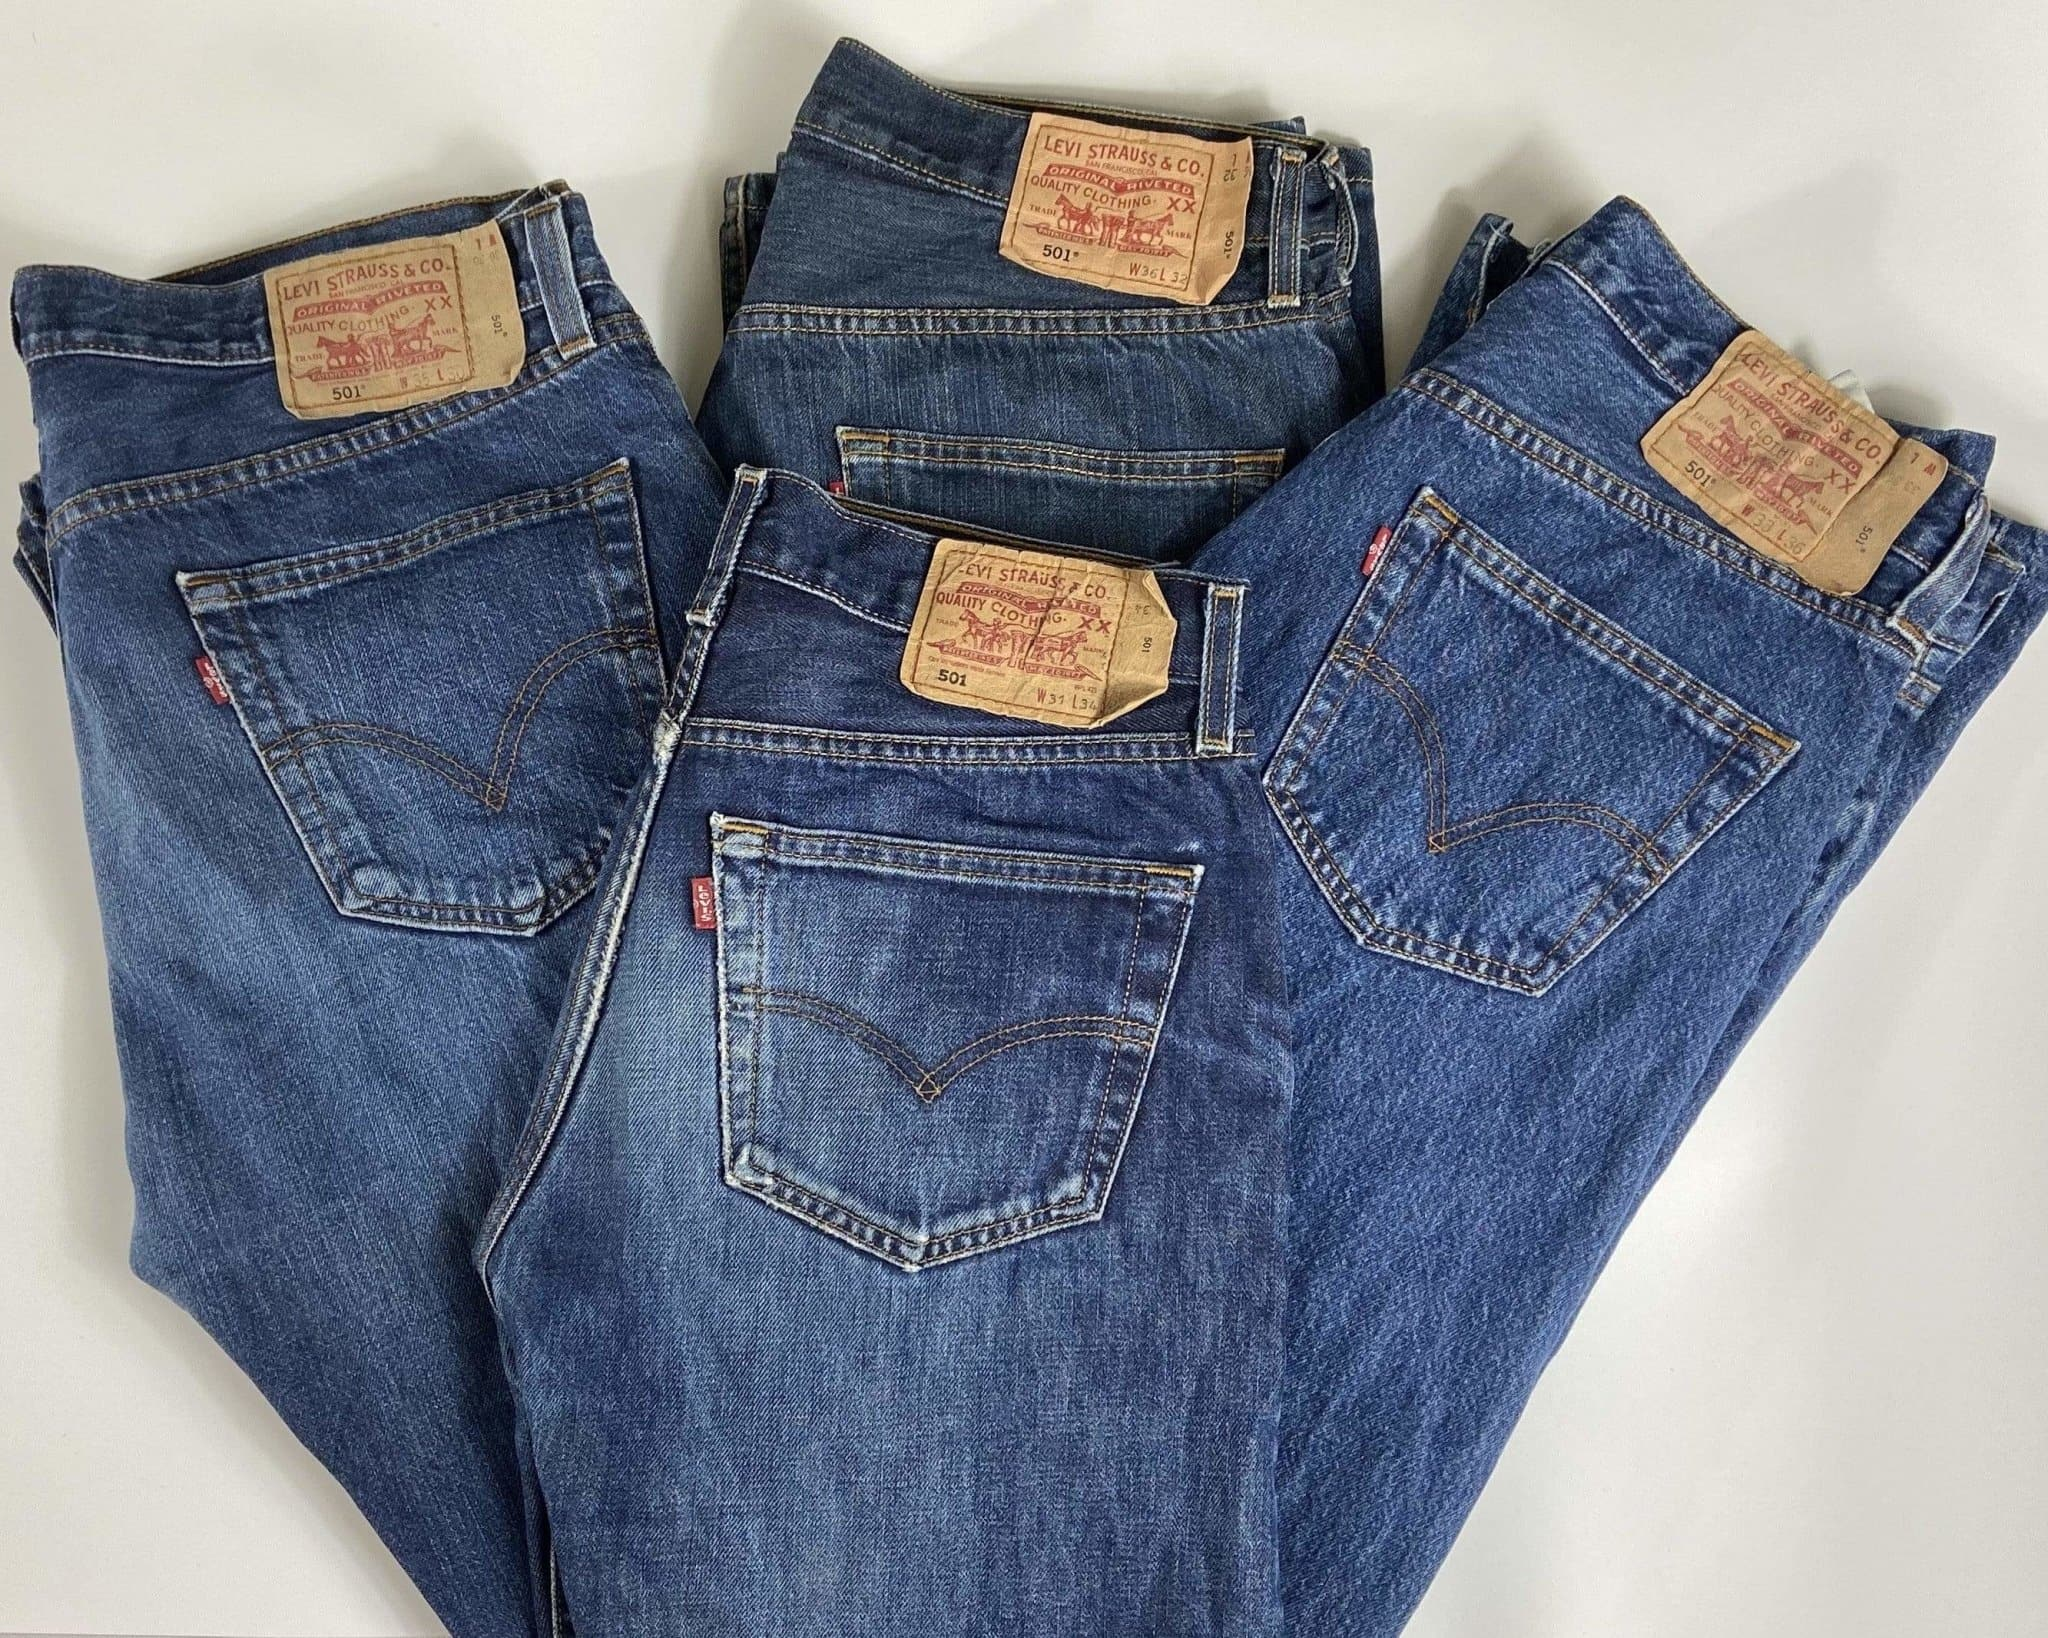 Vintage Levi's Classic 501 Jeans W30 L32 (DHLB1) - Discounted Deals UK